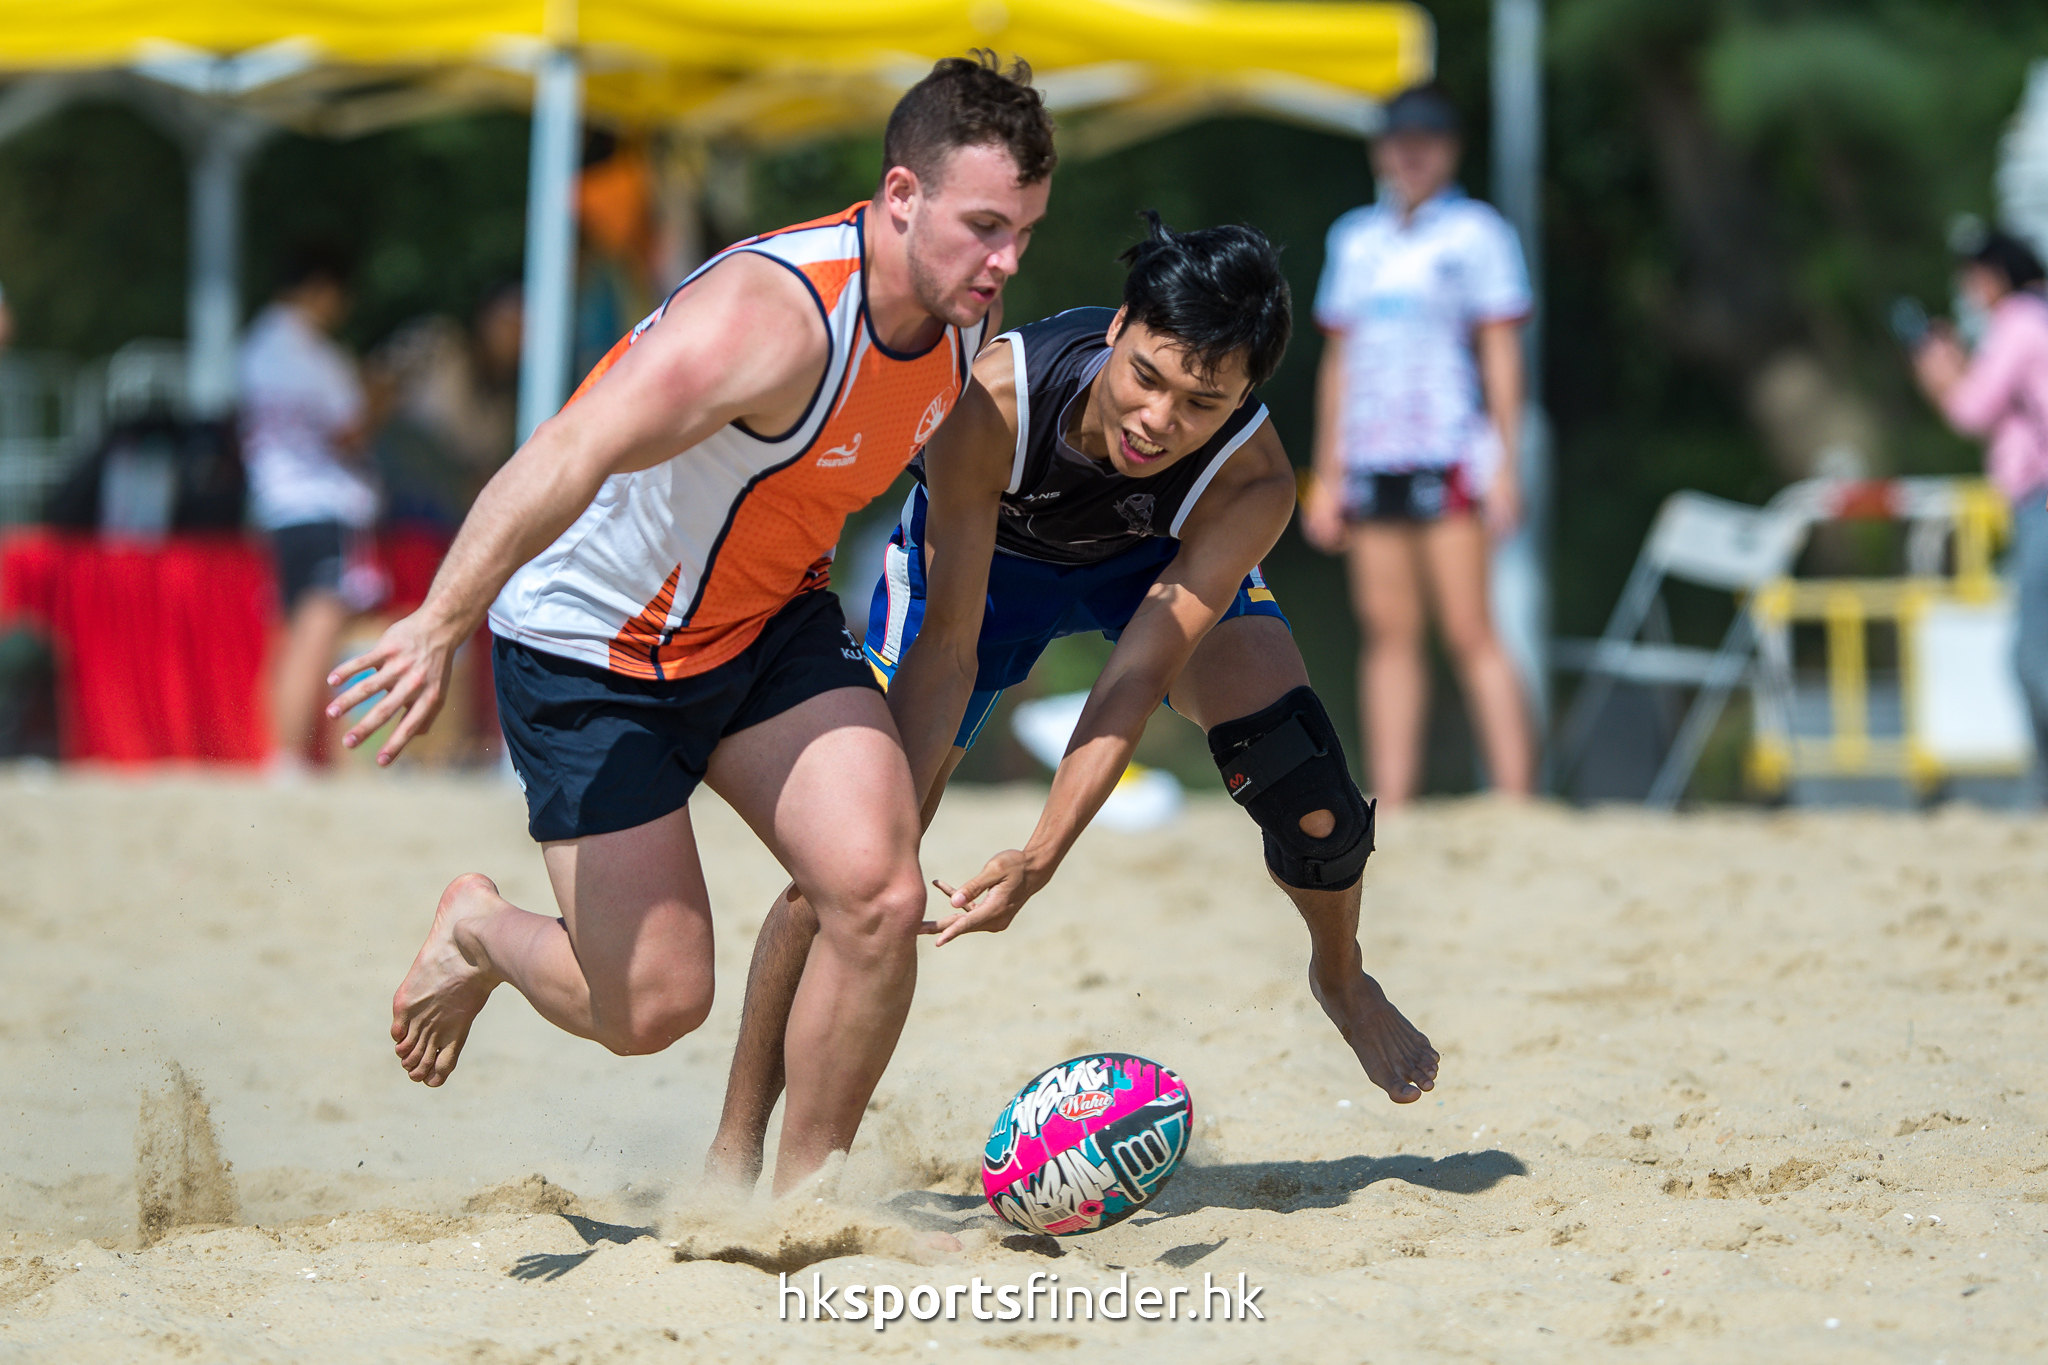 Her_GoldCoastTertiaryBeachRugby_16-11-12 12.53.54_000822.jpg